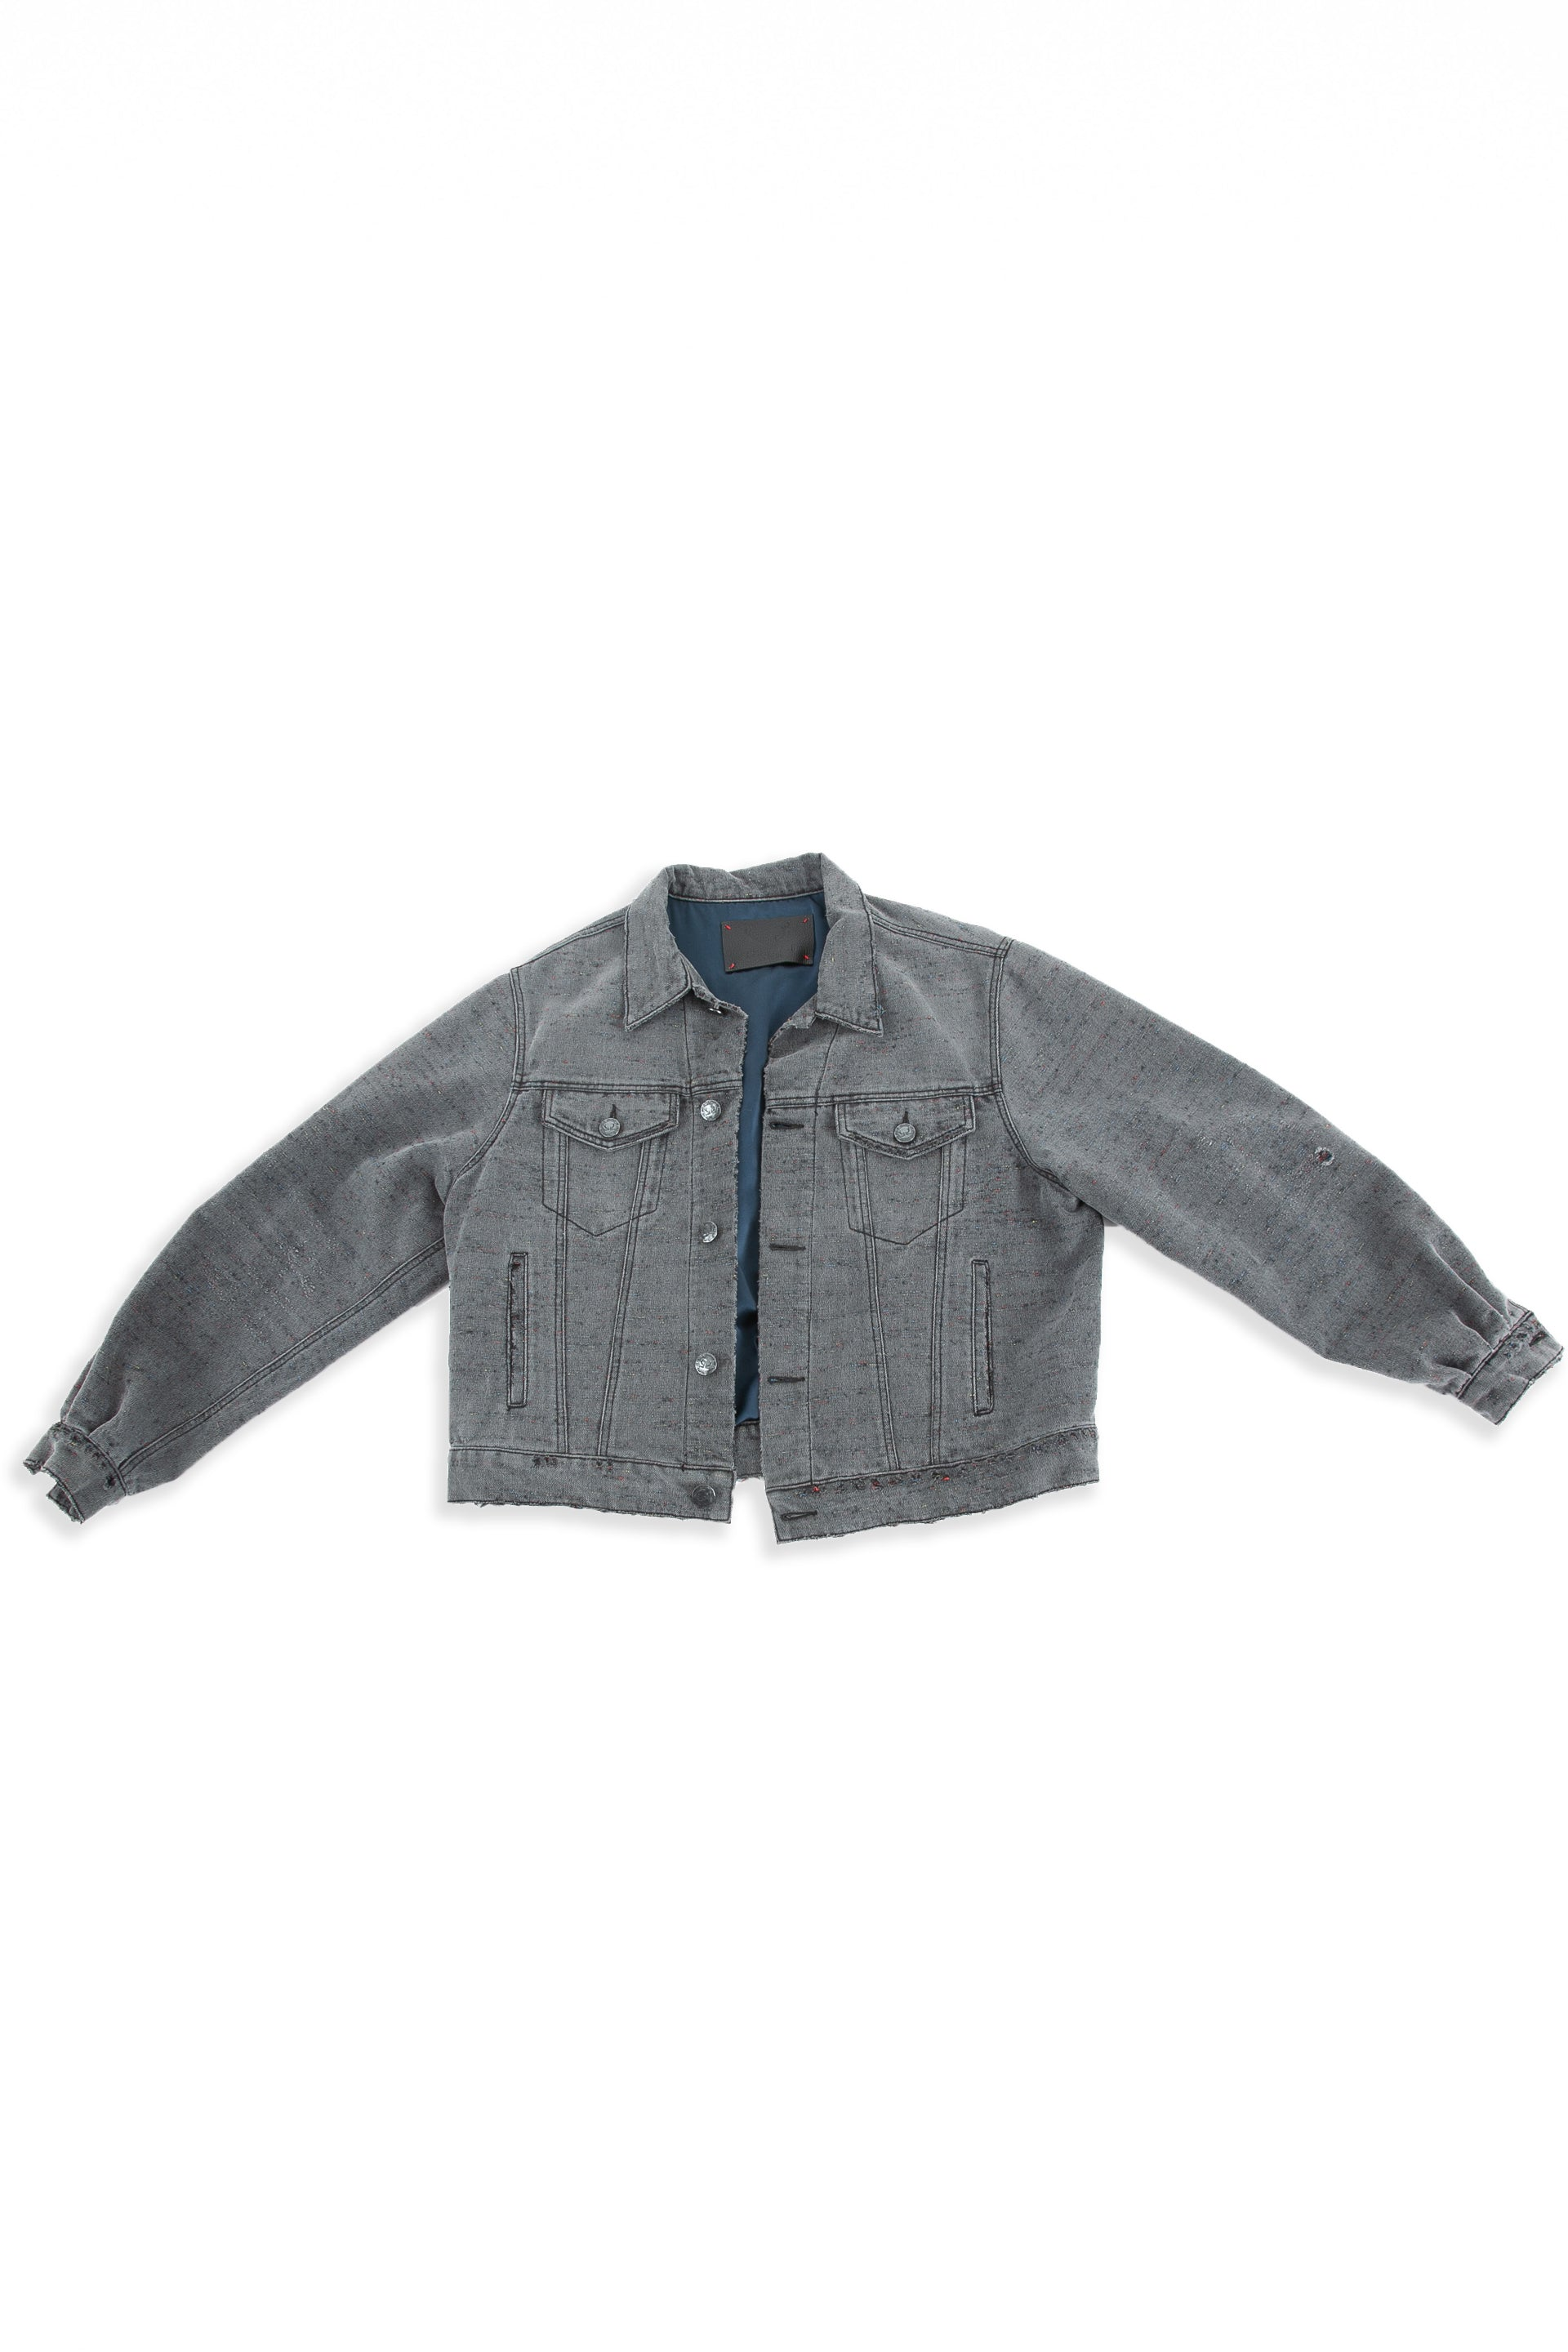 Front of Midnight Denim jacket